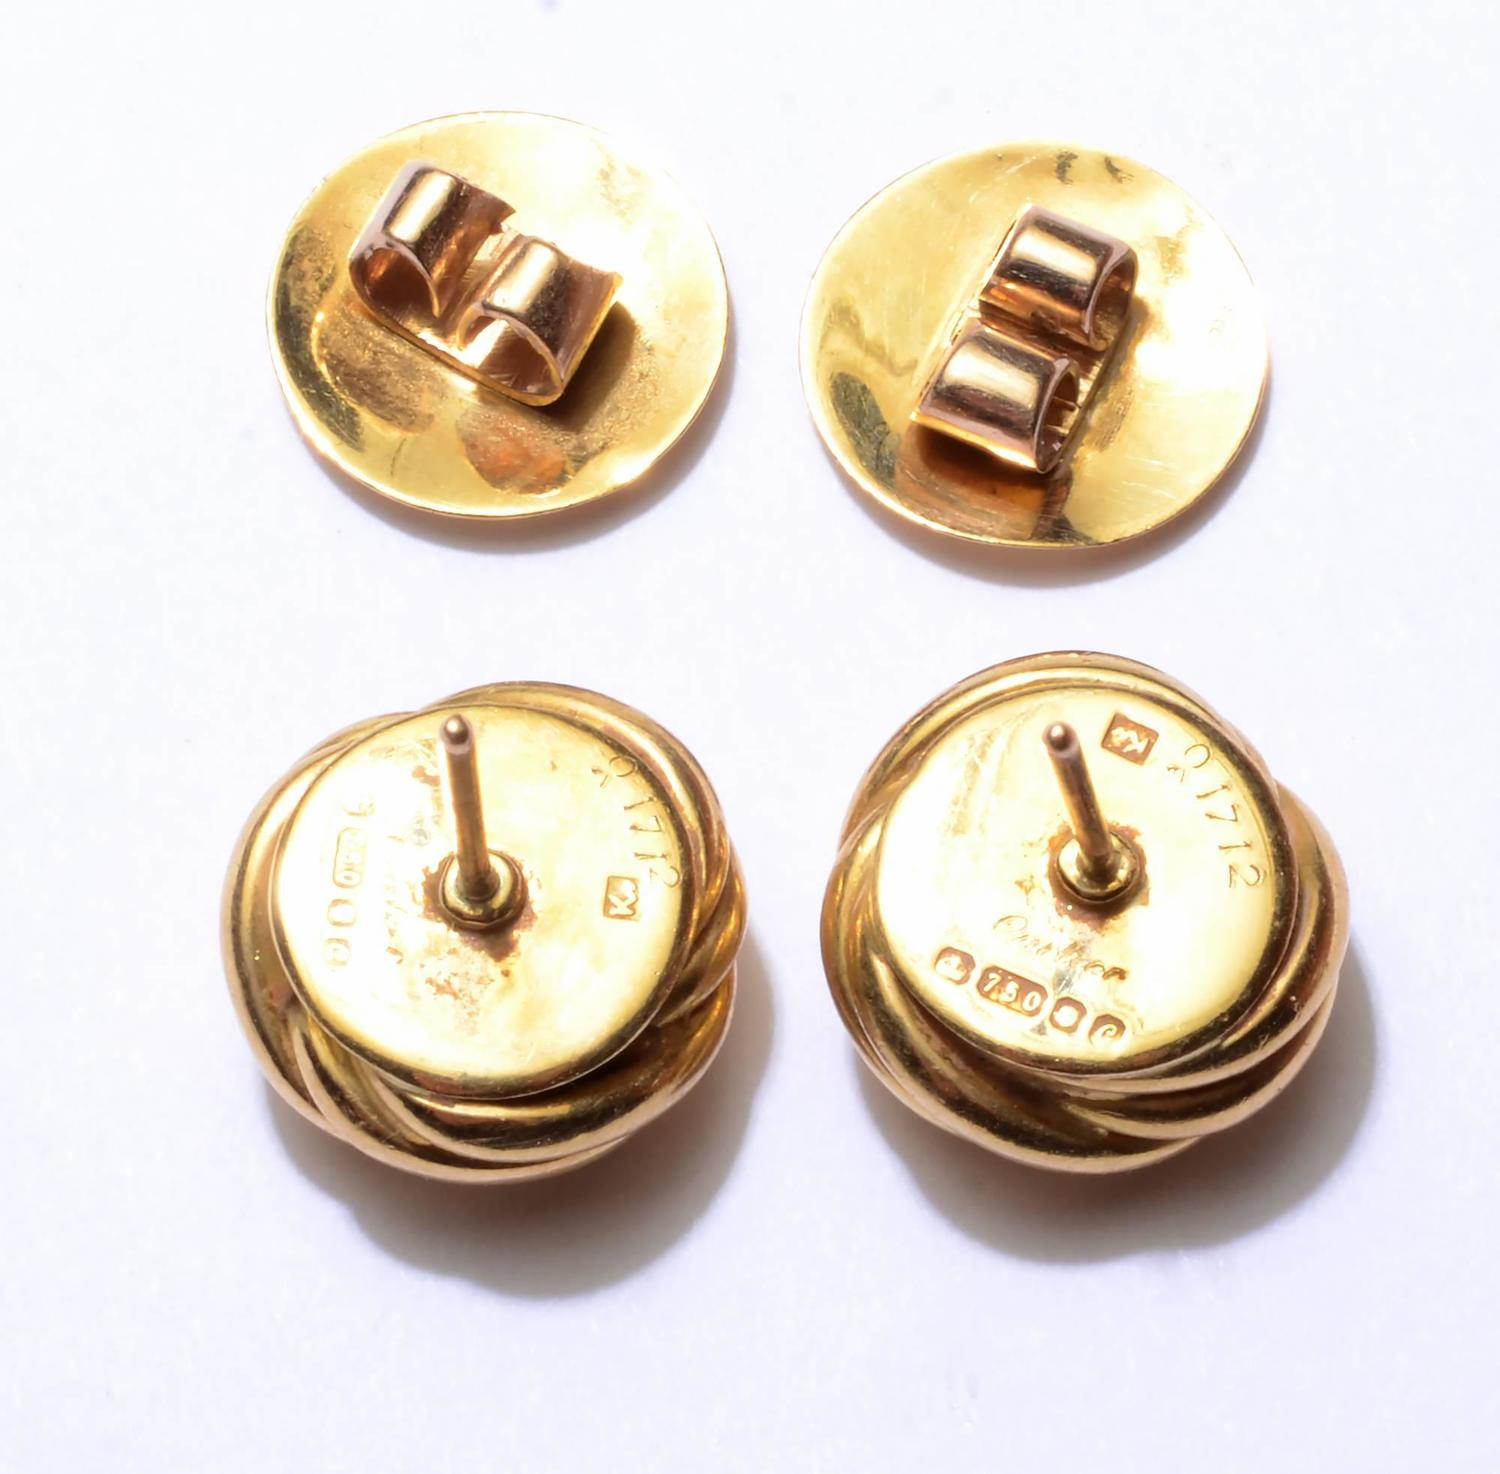 cartier love knot gold earrings at 1stdibs